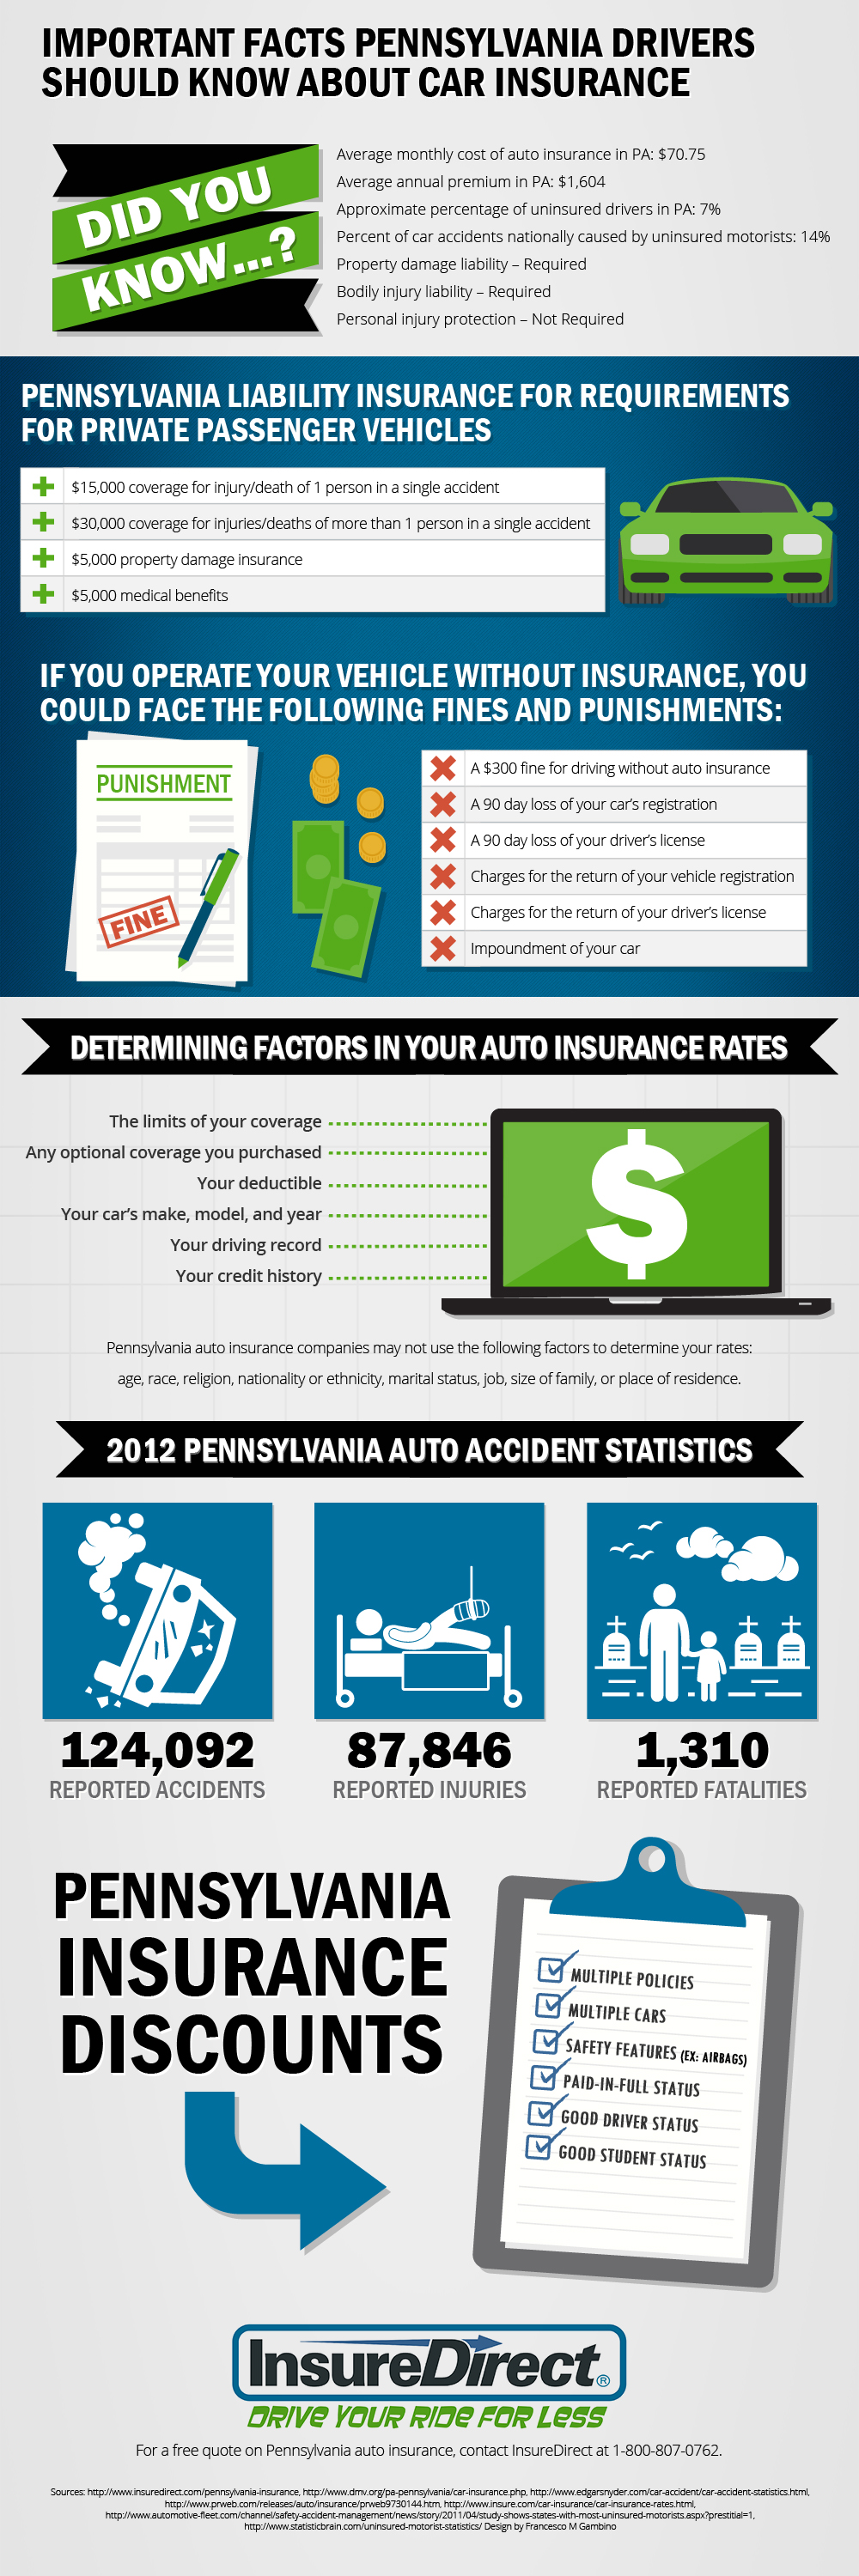 Direct General Insurance Quotes Important Facts About Pa Car Insurance